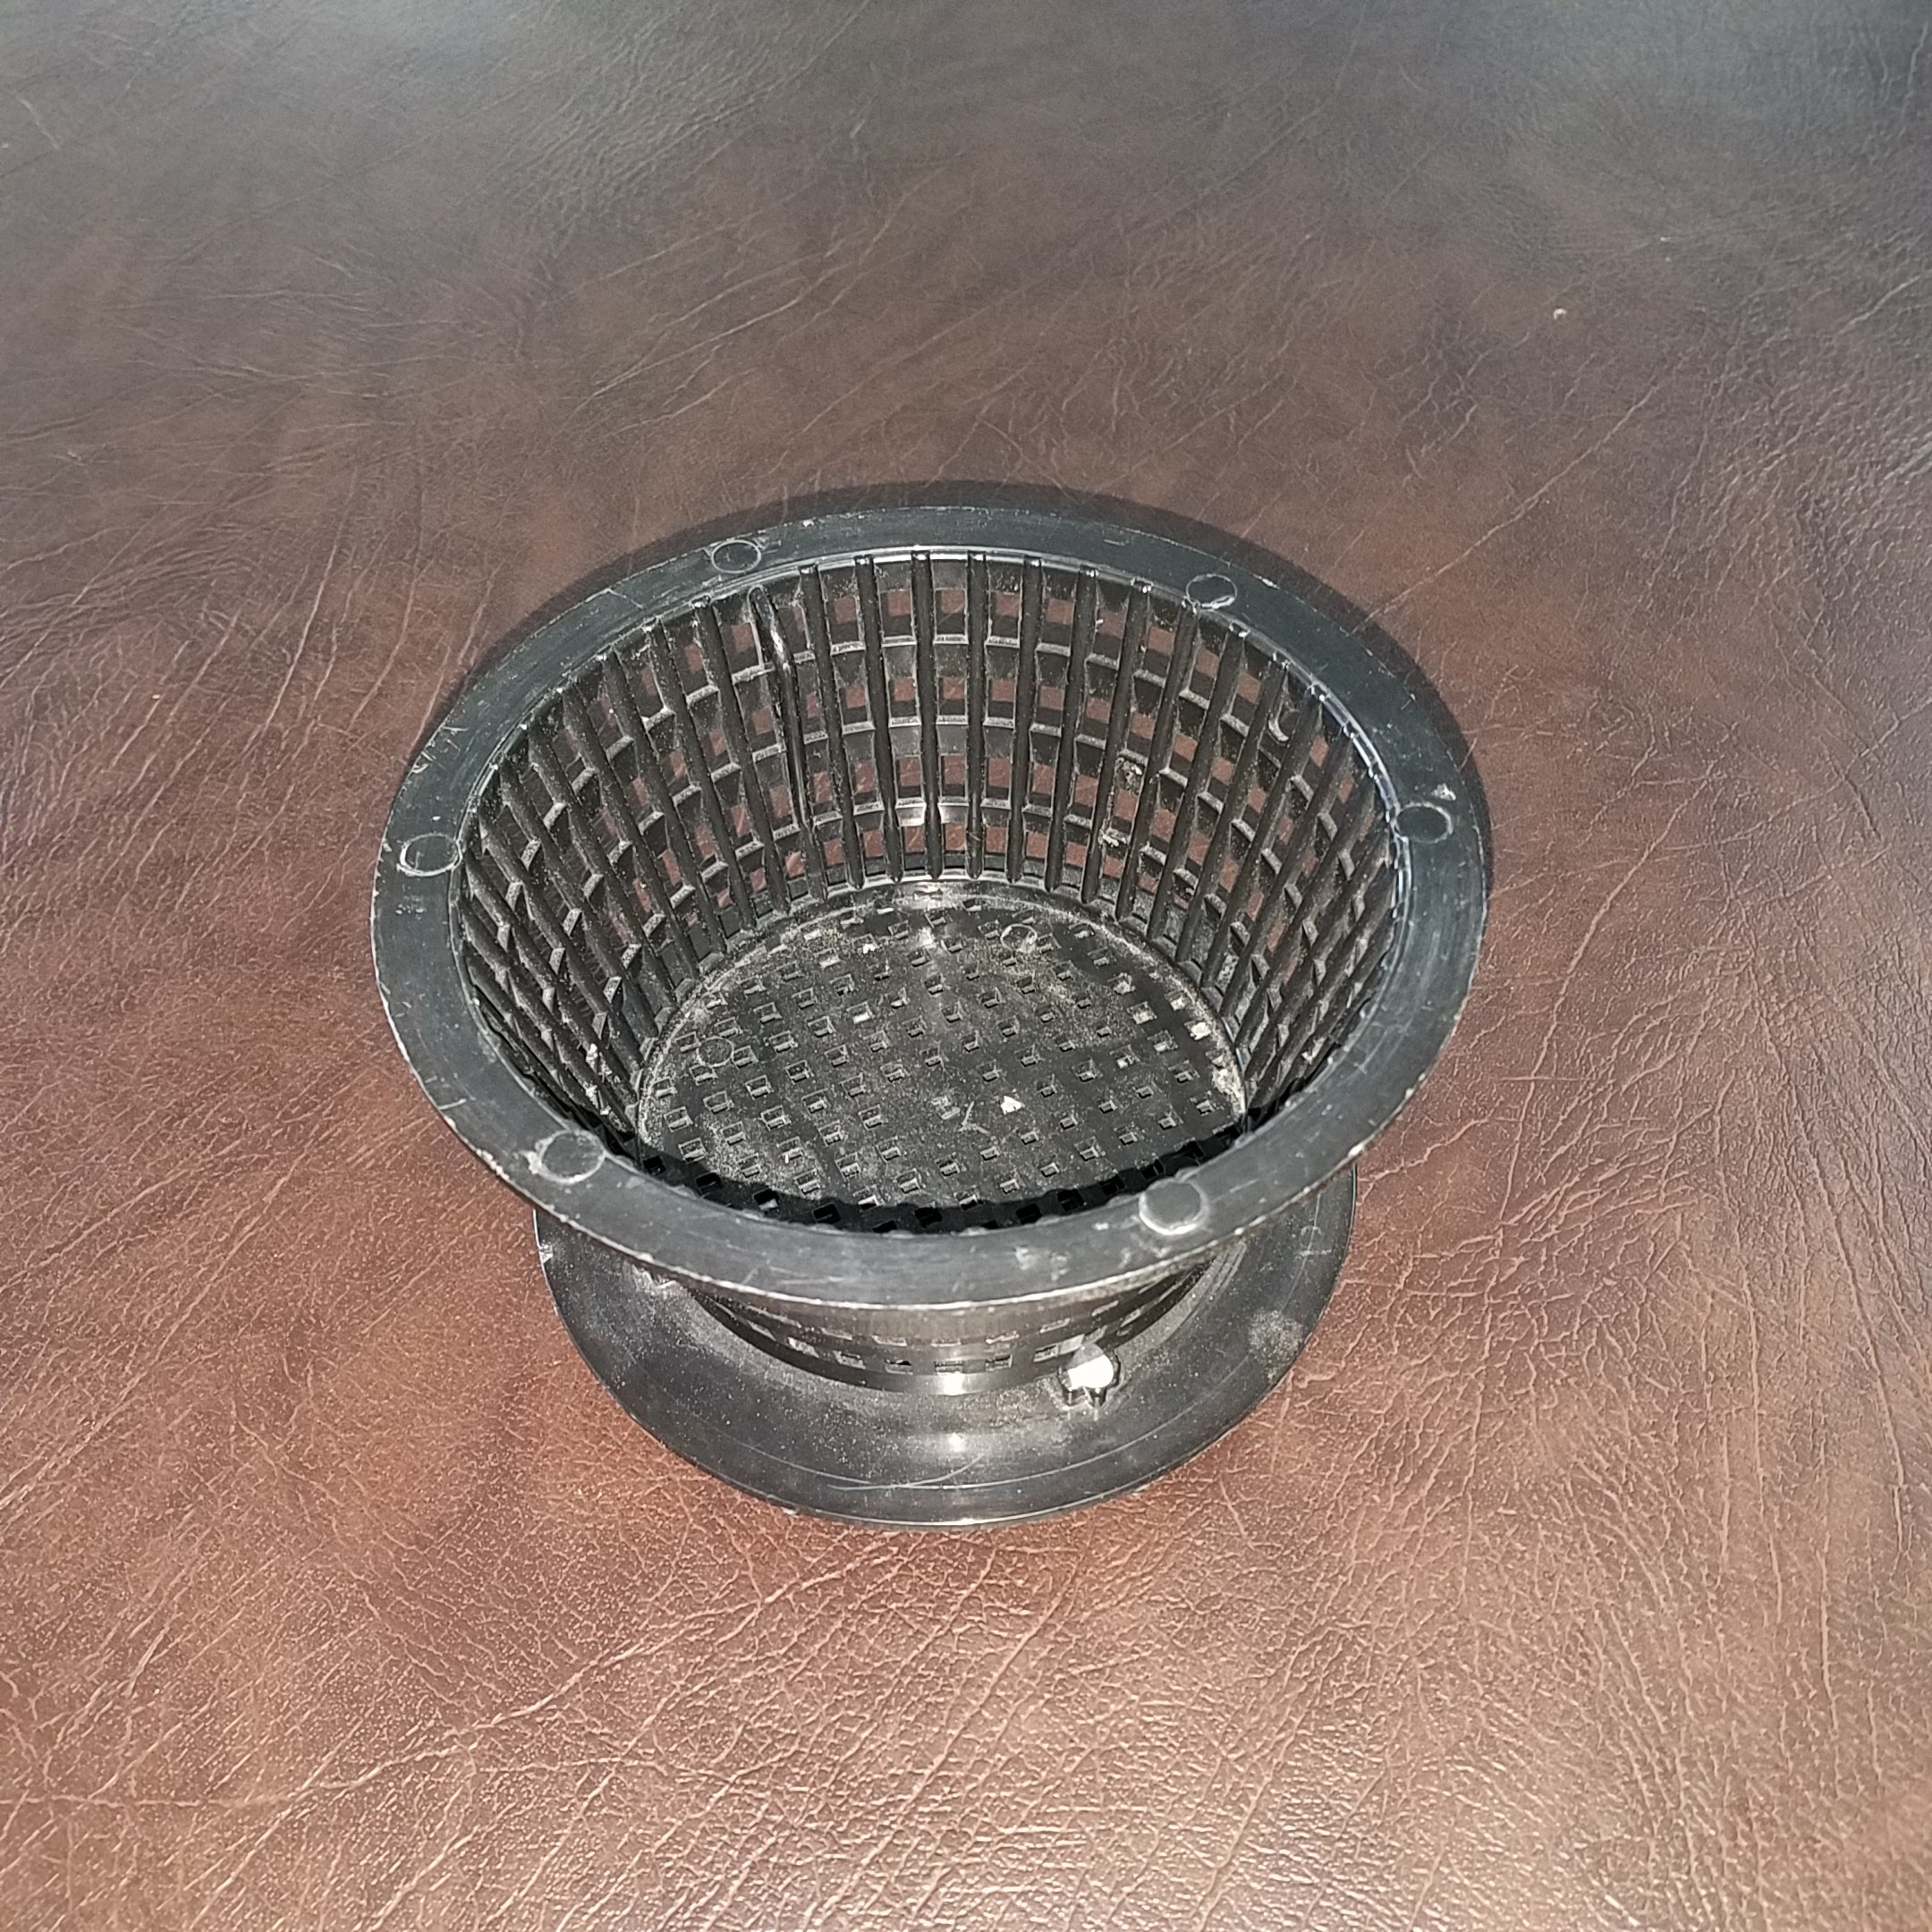 Four Winds Filter Basket, FW6048